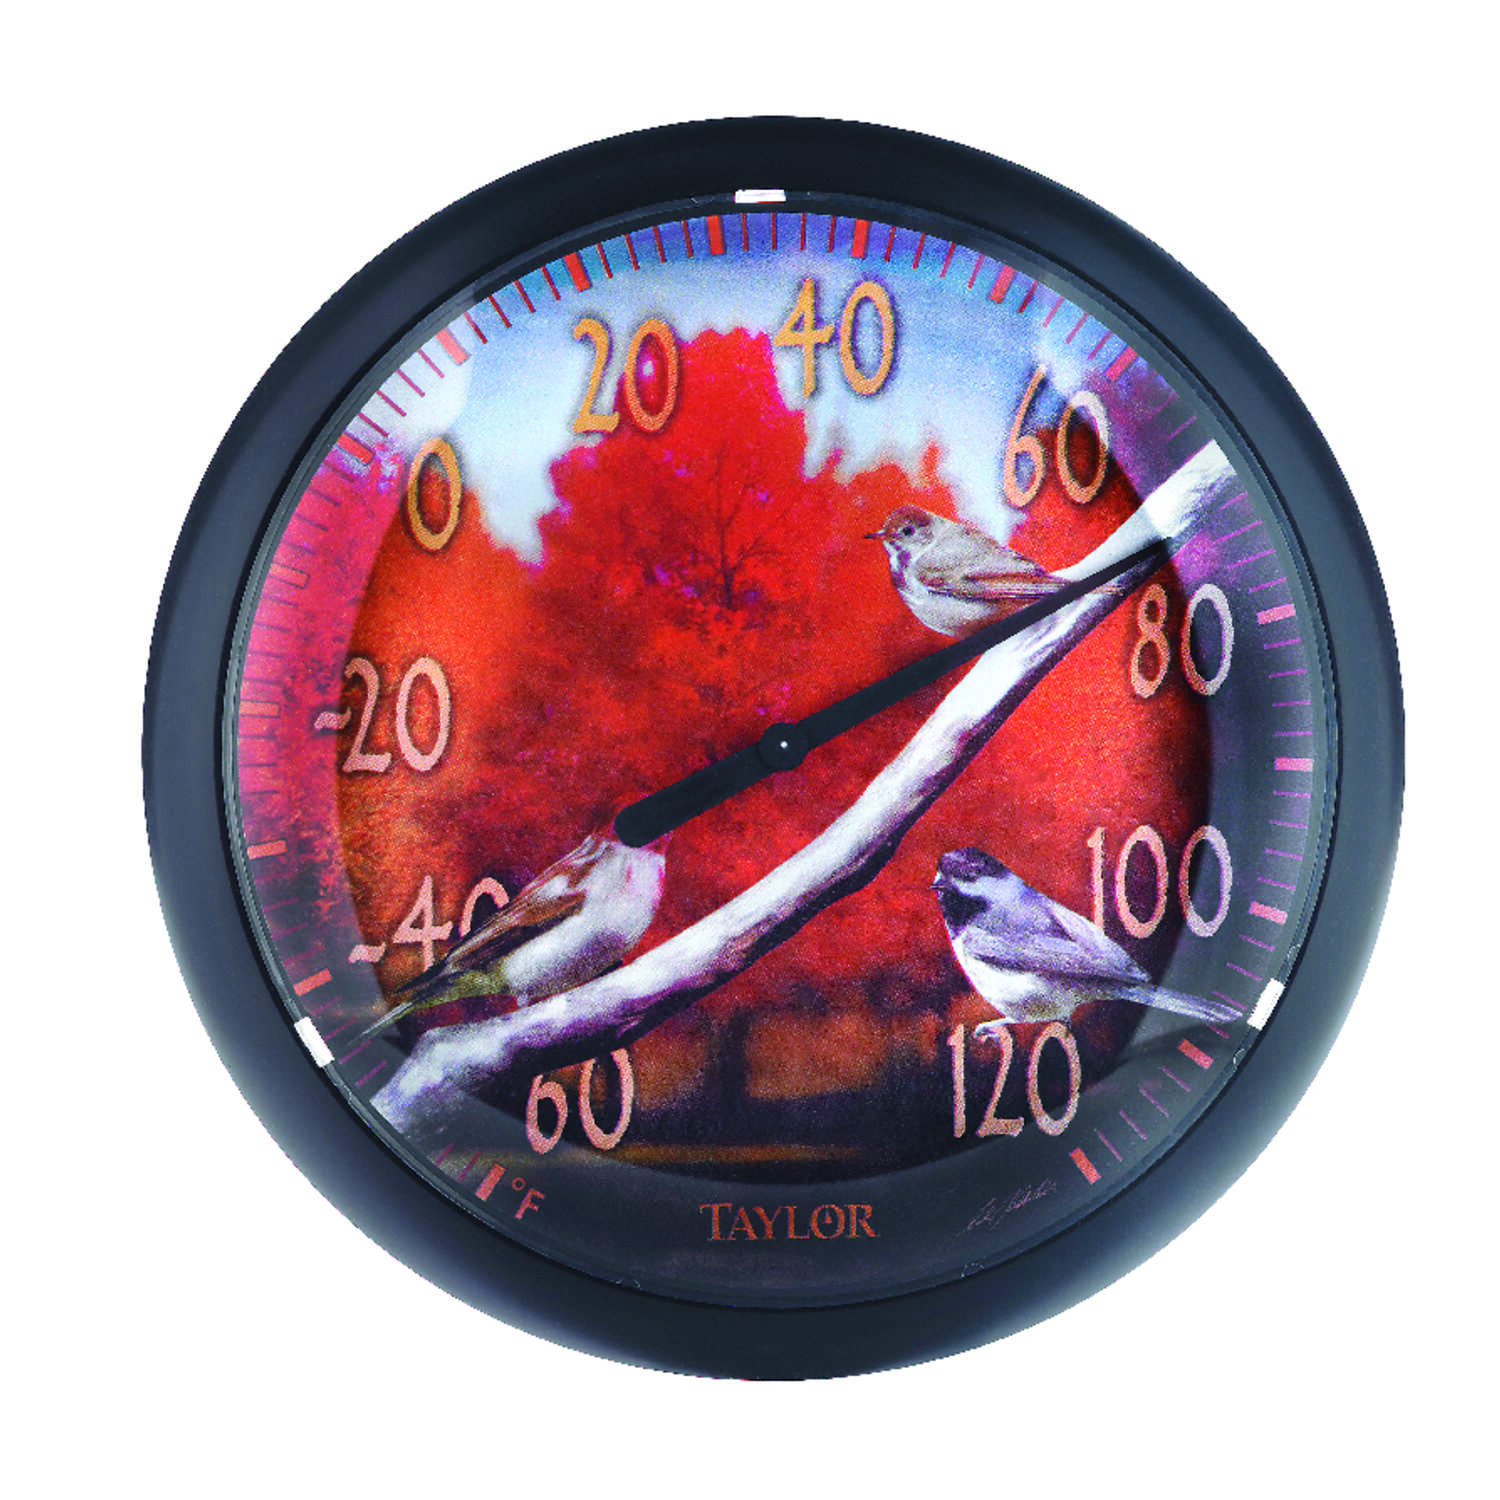 Taylor  Bird Design  Dial Thermometer  Plastic  Multicolored